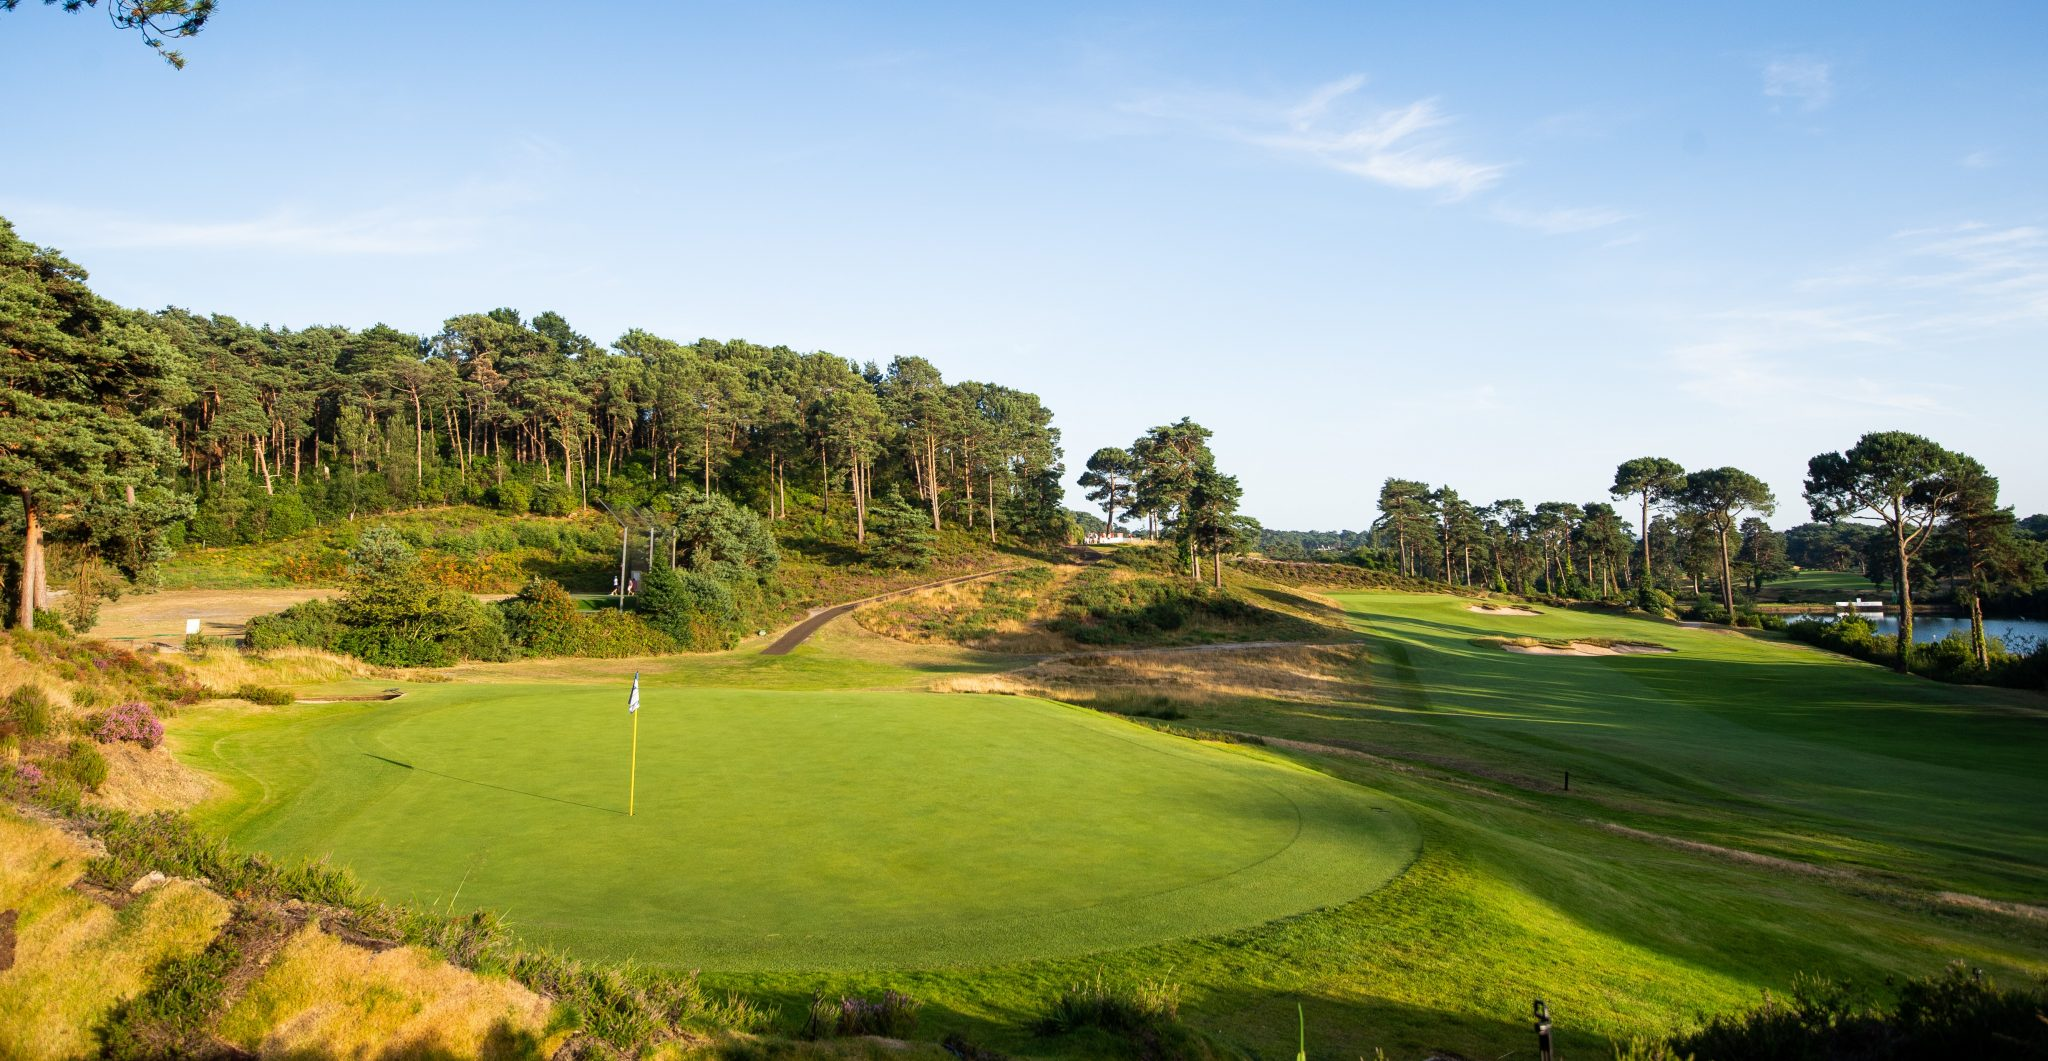 'Golf's reboot gives us all a chance to start afresh' – Our CEO's letter to golfers and clubs